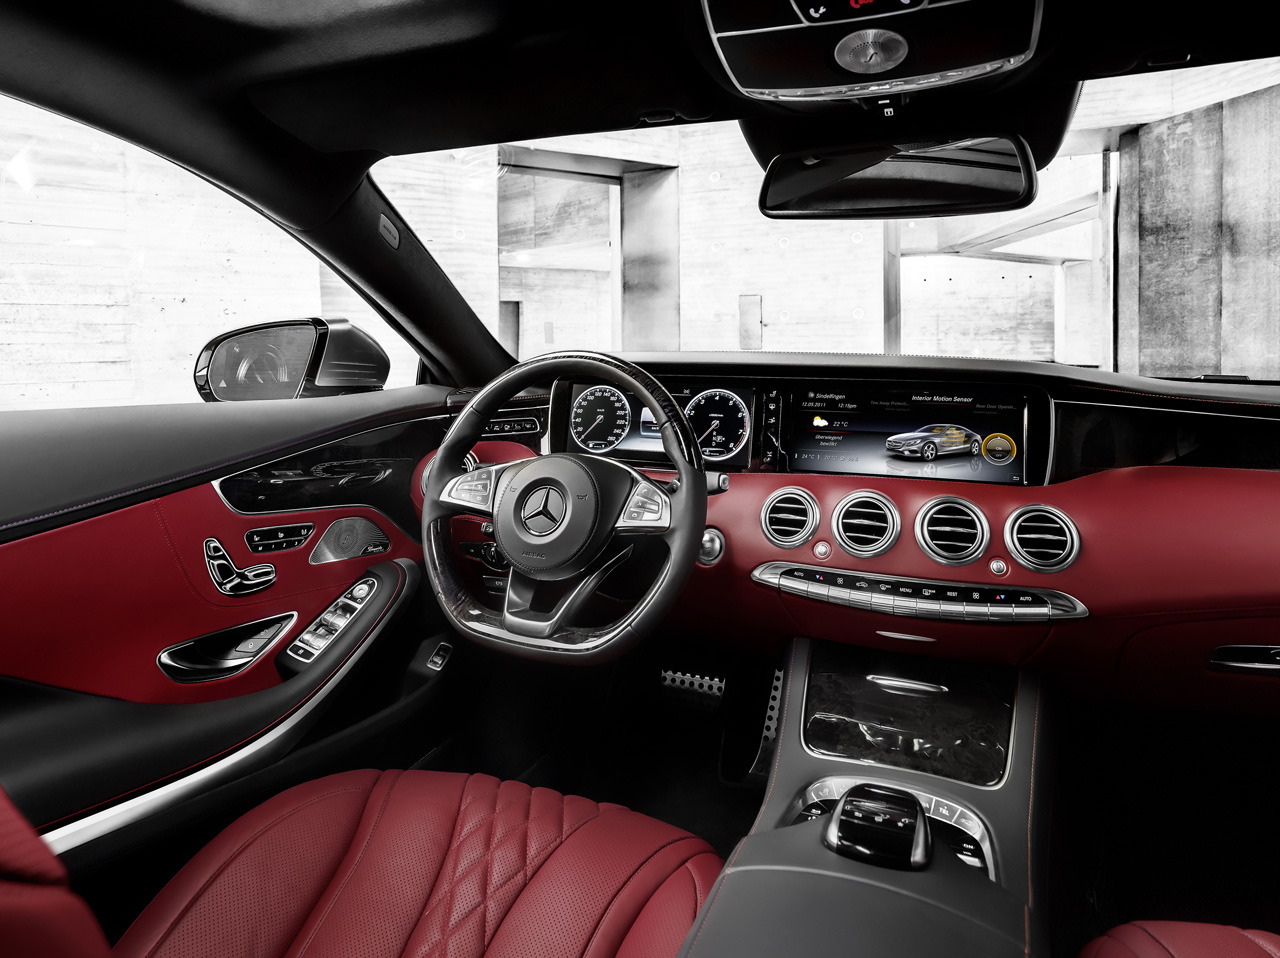 Mercedes Benz S Class Coupe Interior